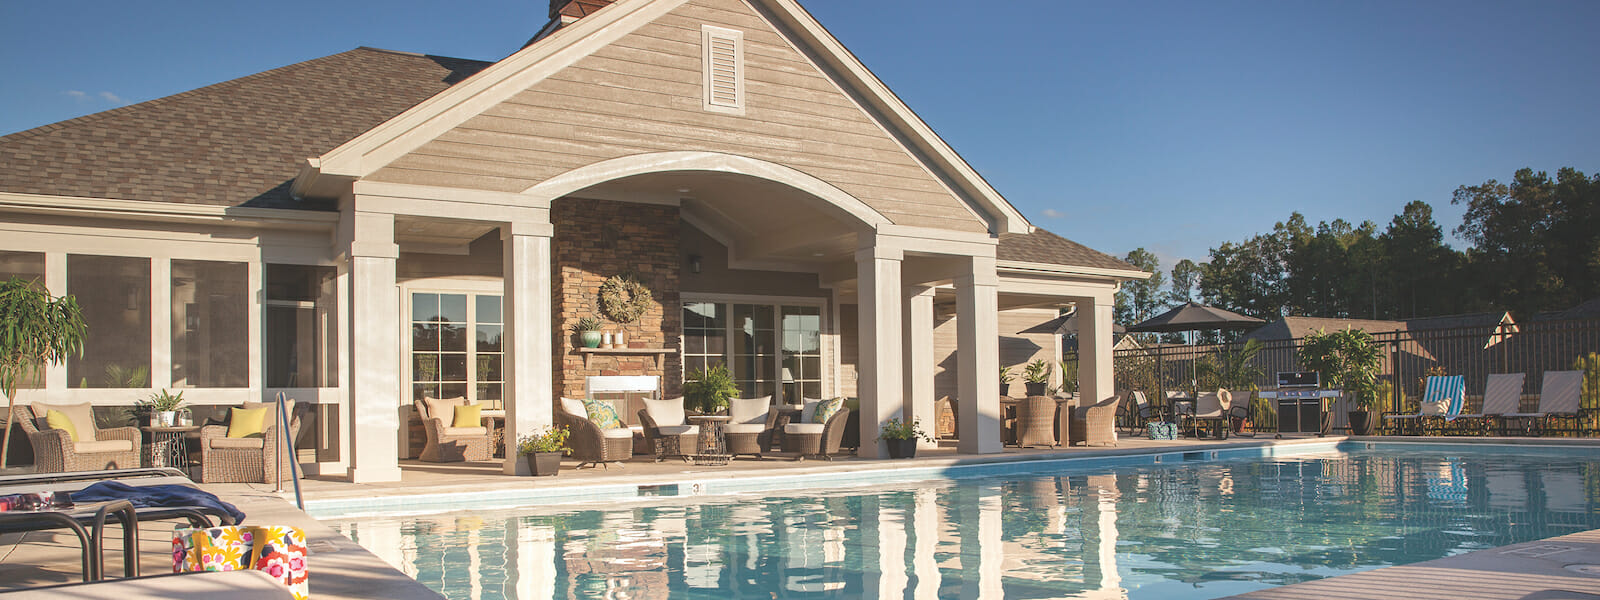 Homes near Southpoint Durham NC | The Courtyards at Southpoint